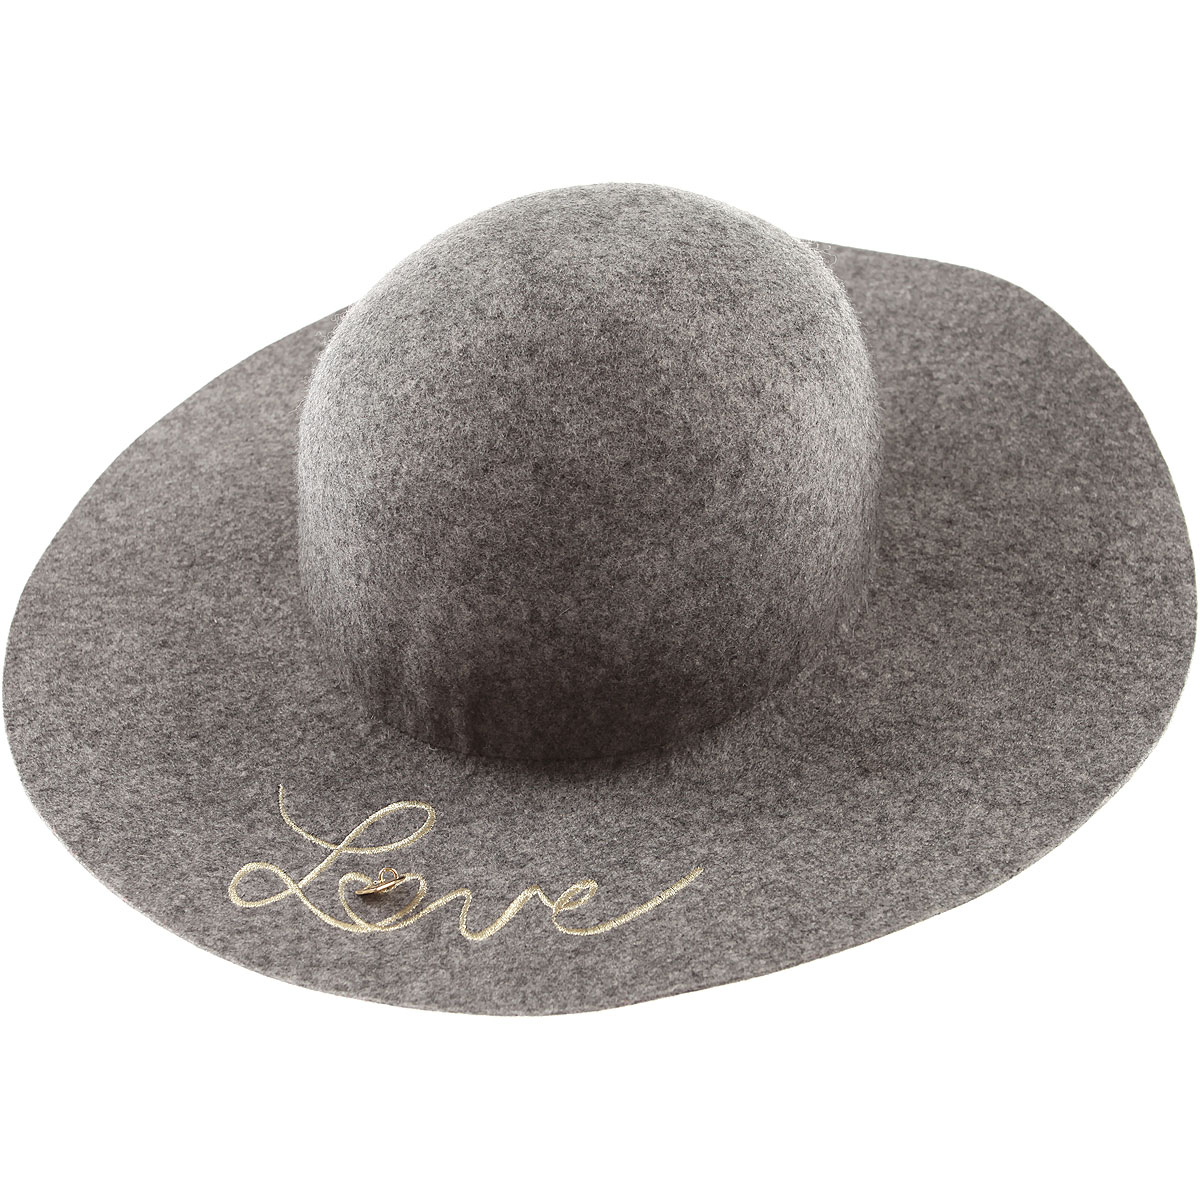 Image of Chloe Kids Hats for Girls, Grey, Wool, 2017, 58 56